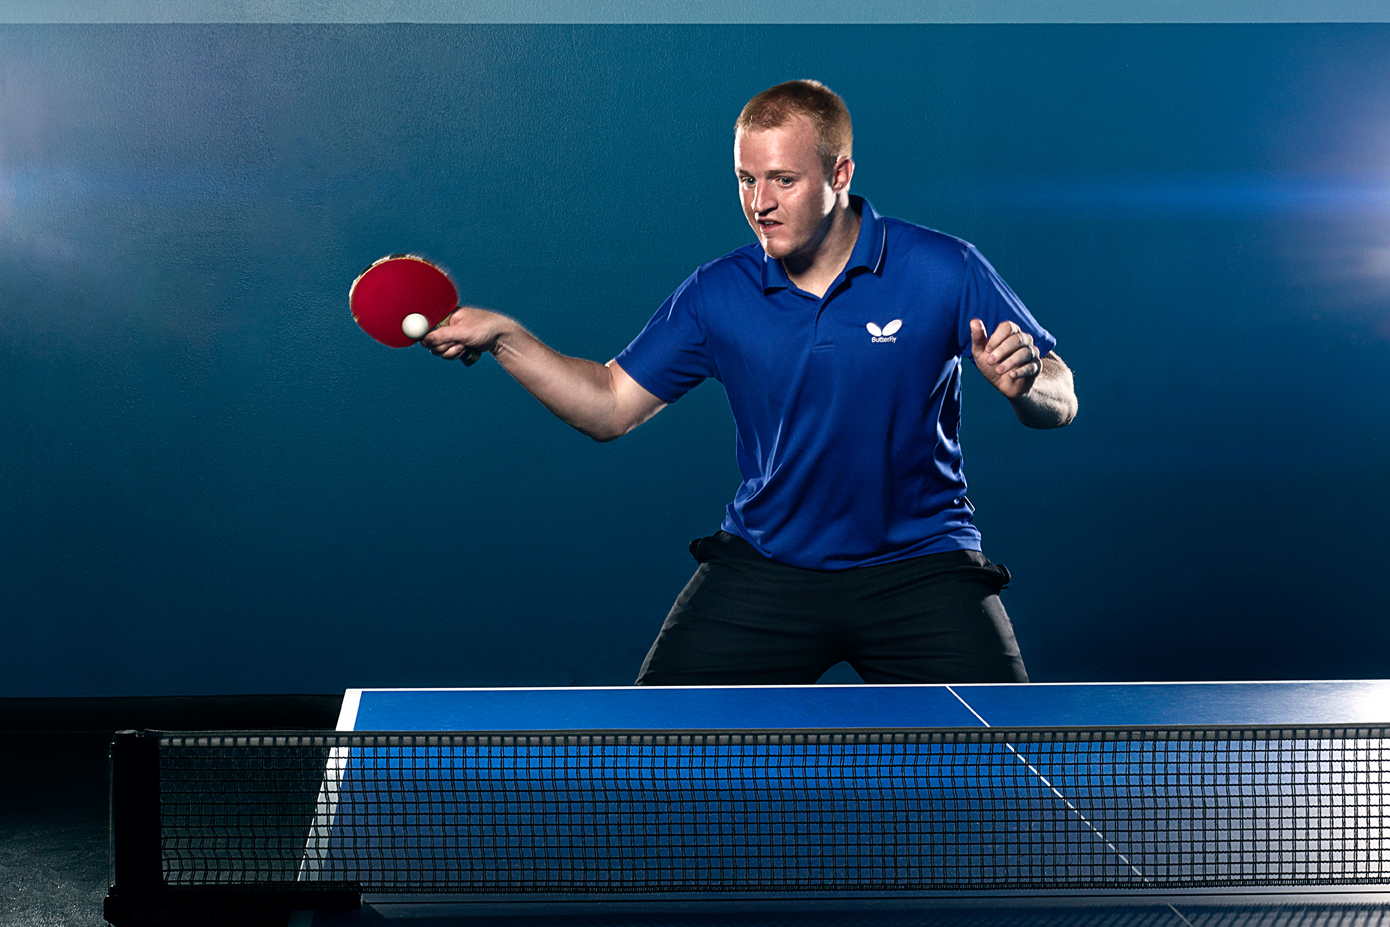 Table Tennis Action - Personal